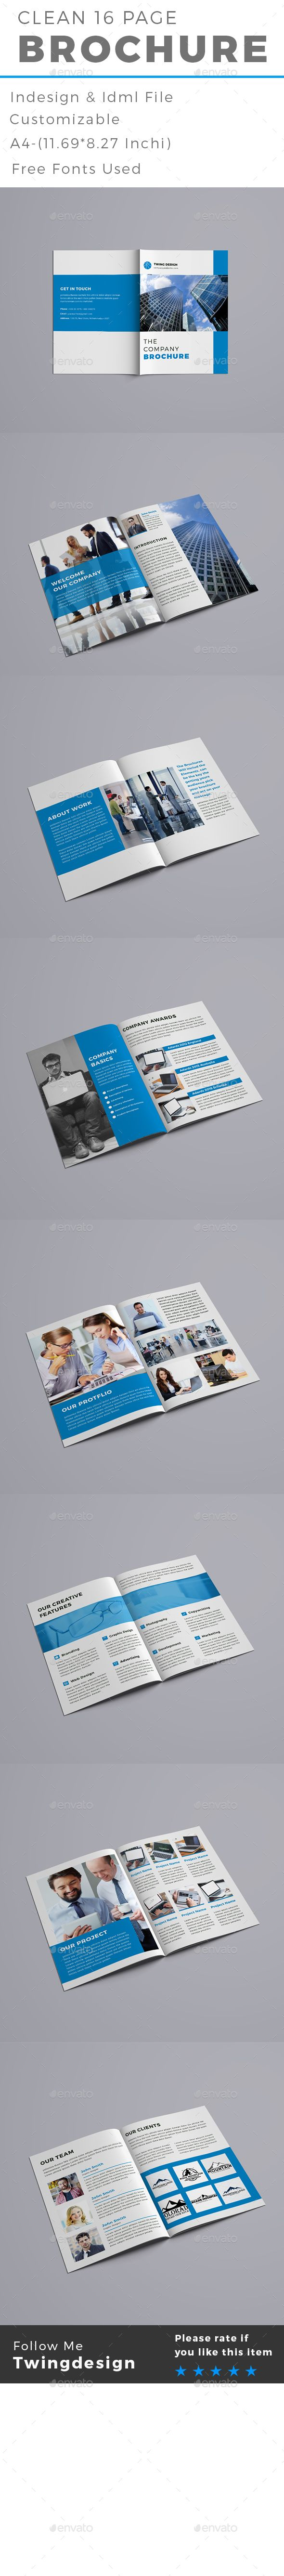 #Brochure - #Brochures #Print #Templates. This is Creative Company Brochure, perfect for use any kind of Corporate. You can edit easily this Brochure, It's 100% customizable, All objects are resizable, with no quality loss,removable and editable. Specification